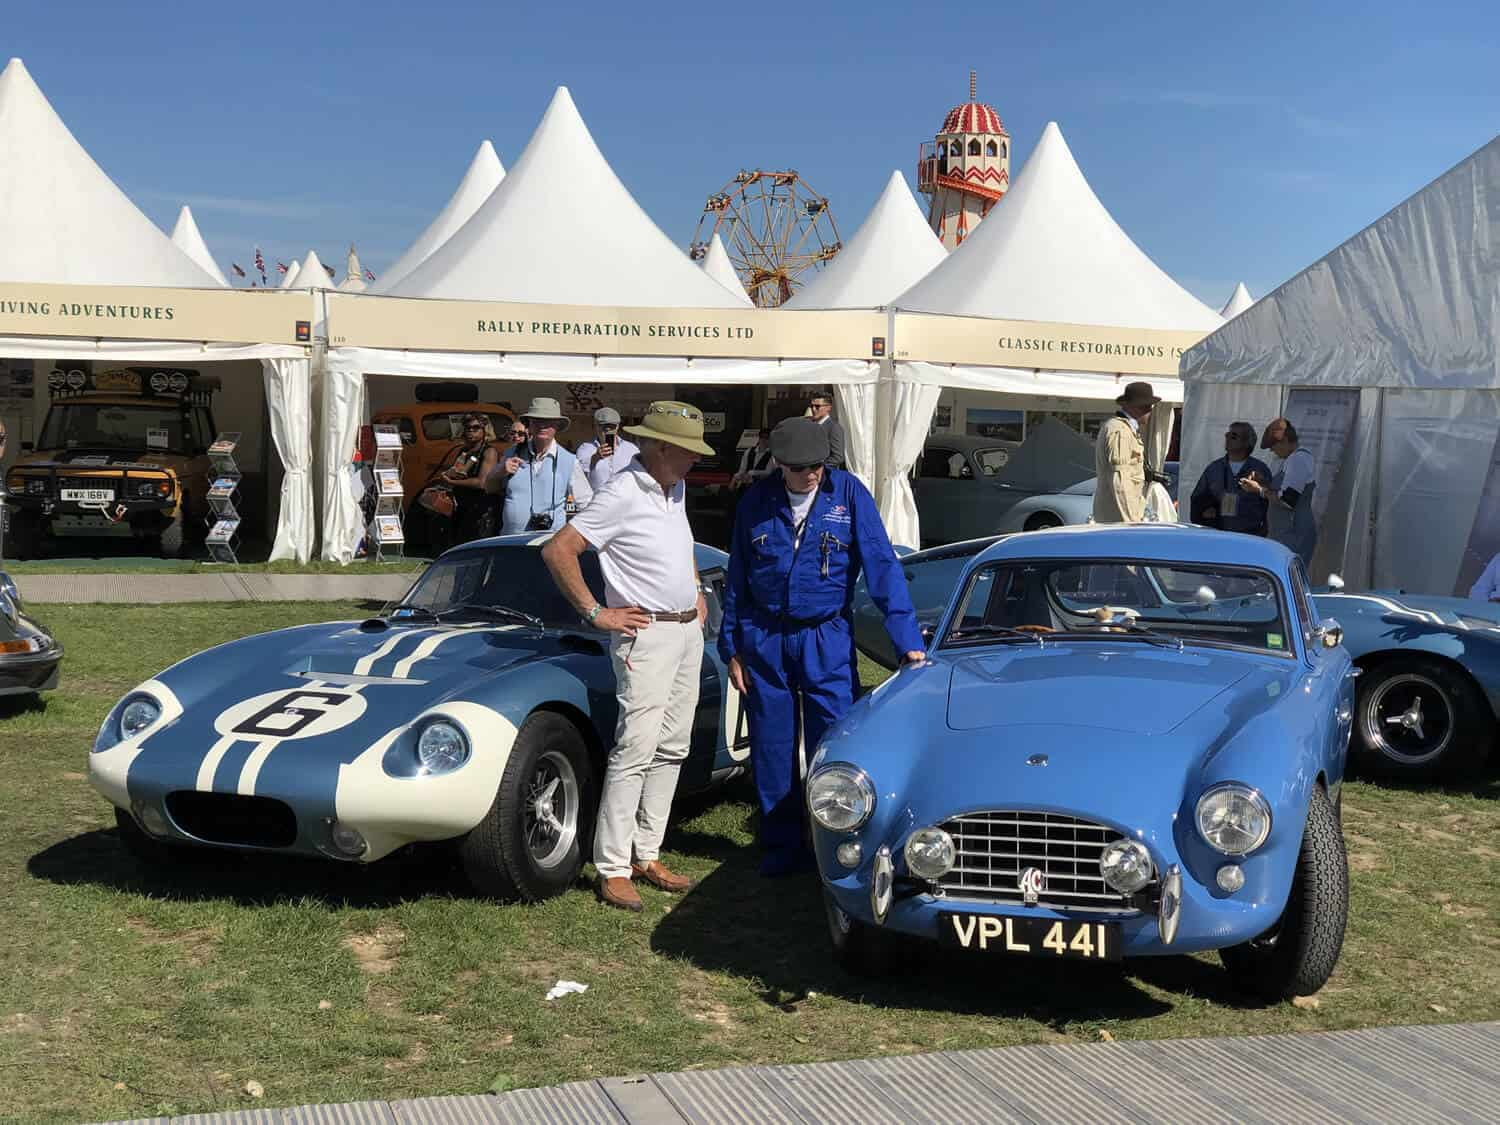 AC Bluebird at Goodwood Revival 2019 with Peter Brock and his Cobras